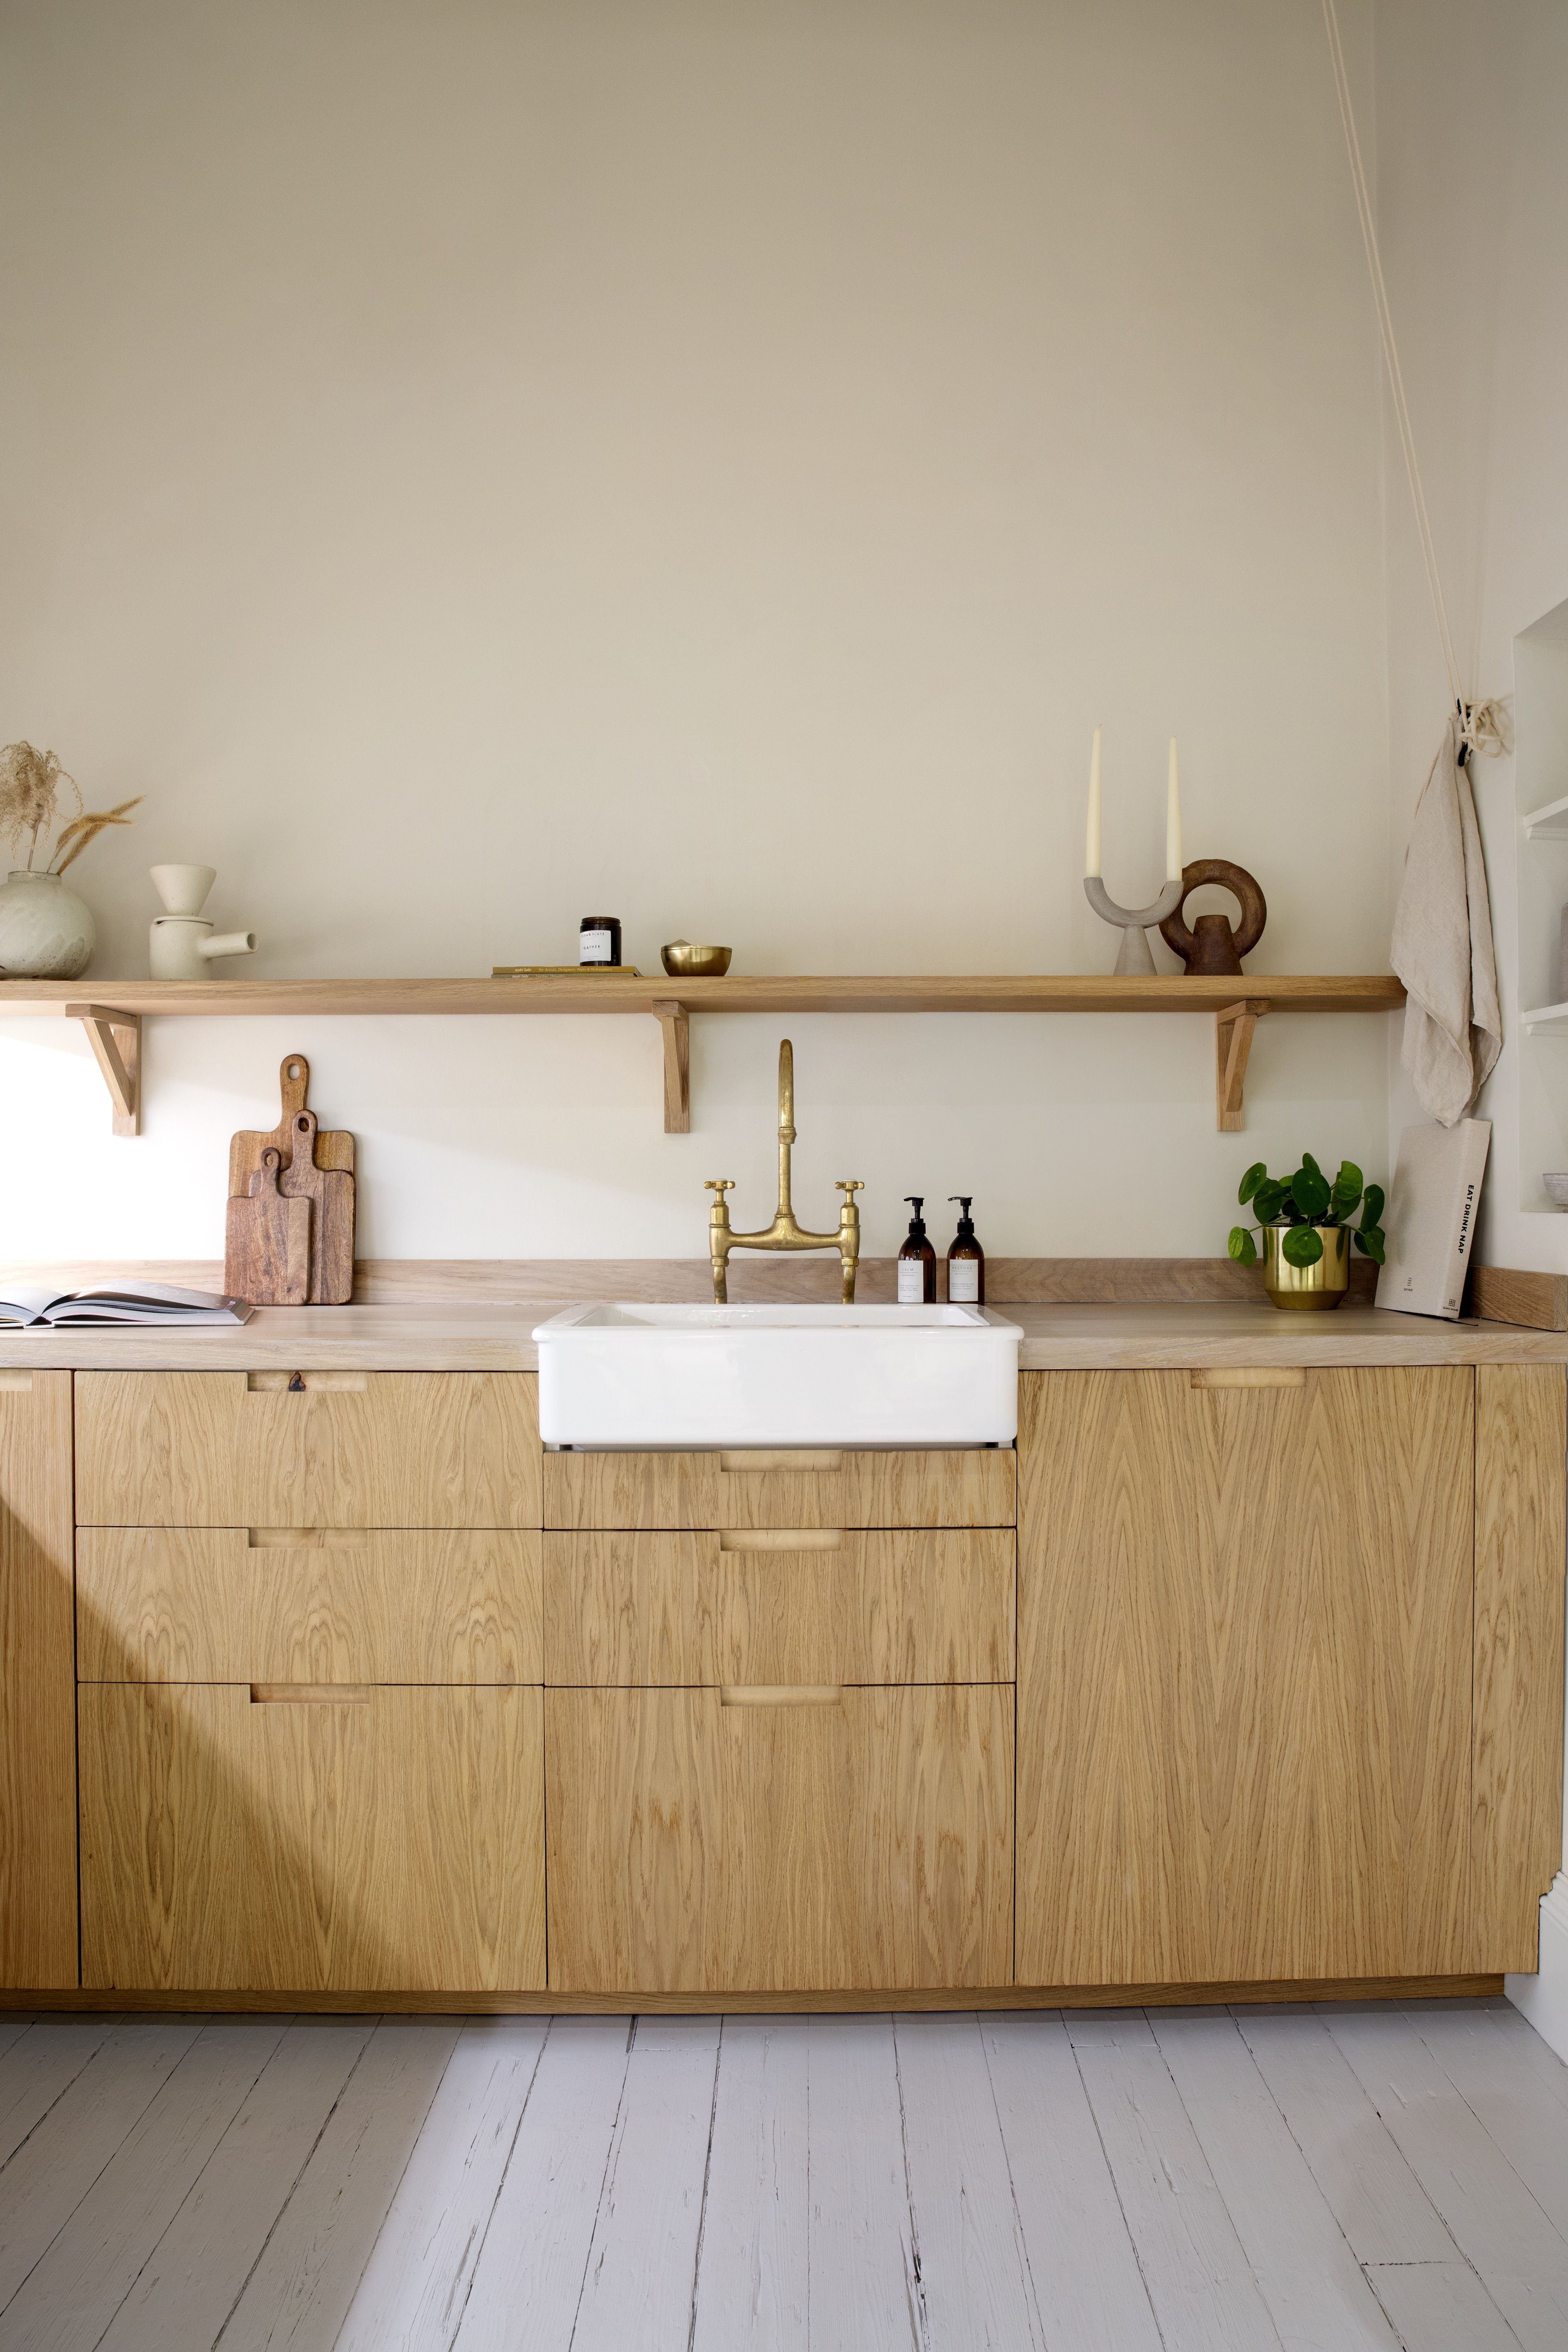 Natural Oak Wood Kitchen, England, by Custom Fronts. Built